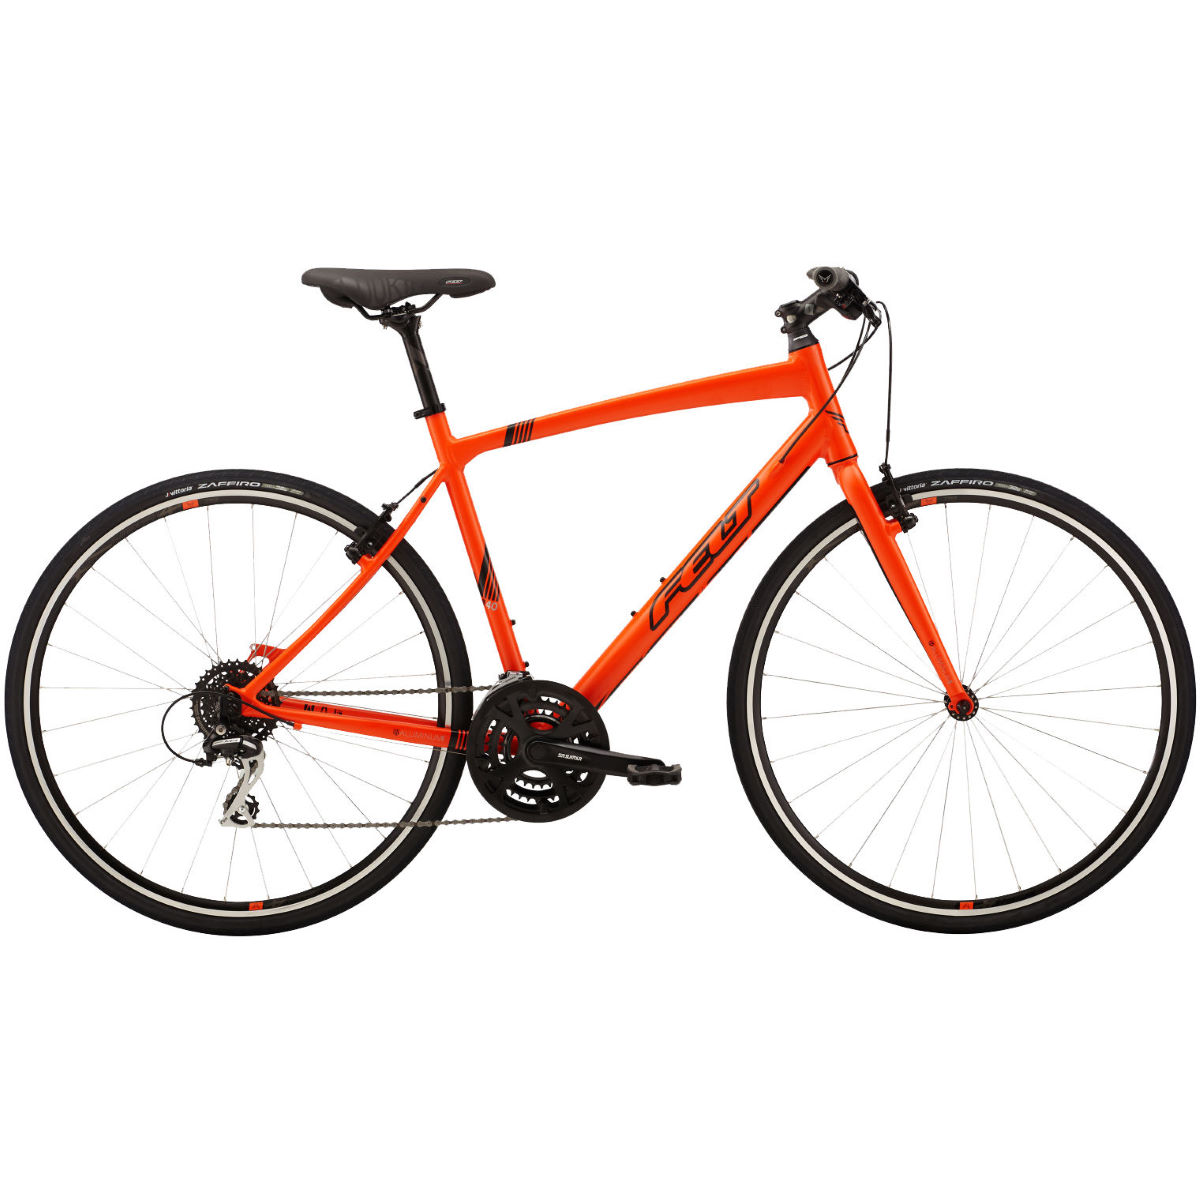 Vélo Felt Verza Speed 40 (2017) - 51cm Orange Vélos hybrides & ville